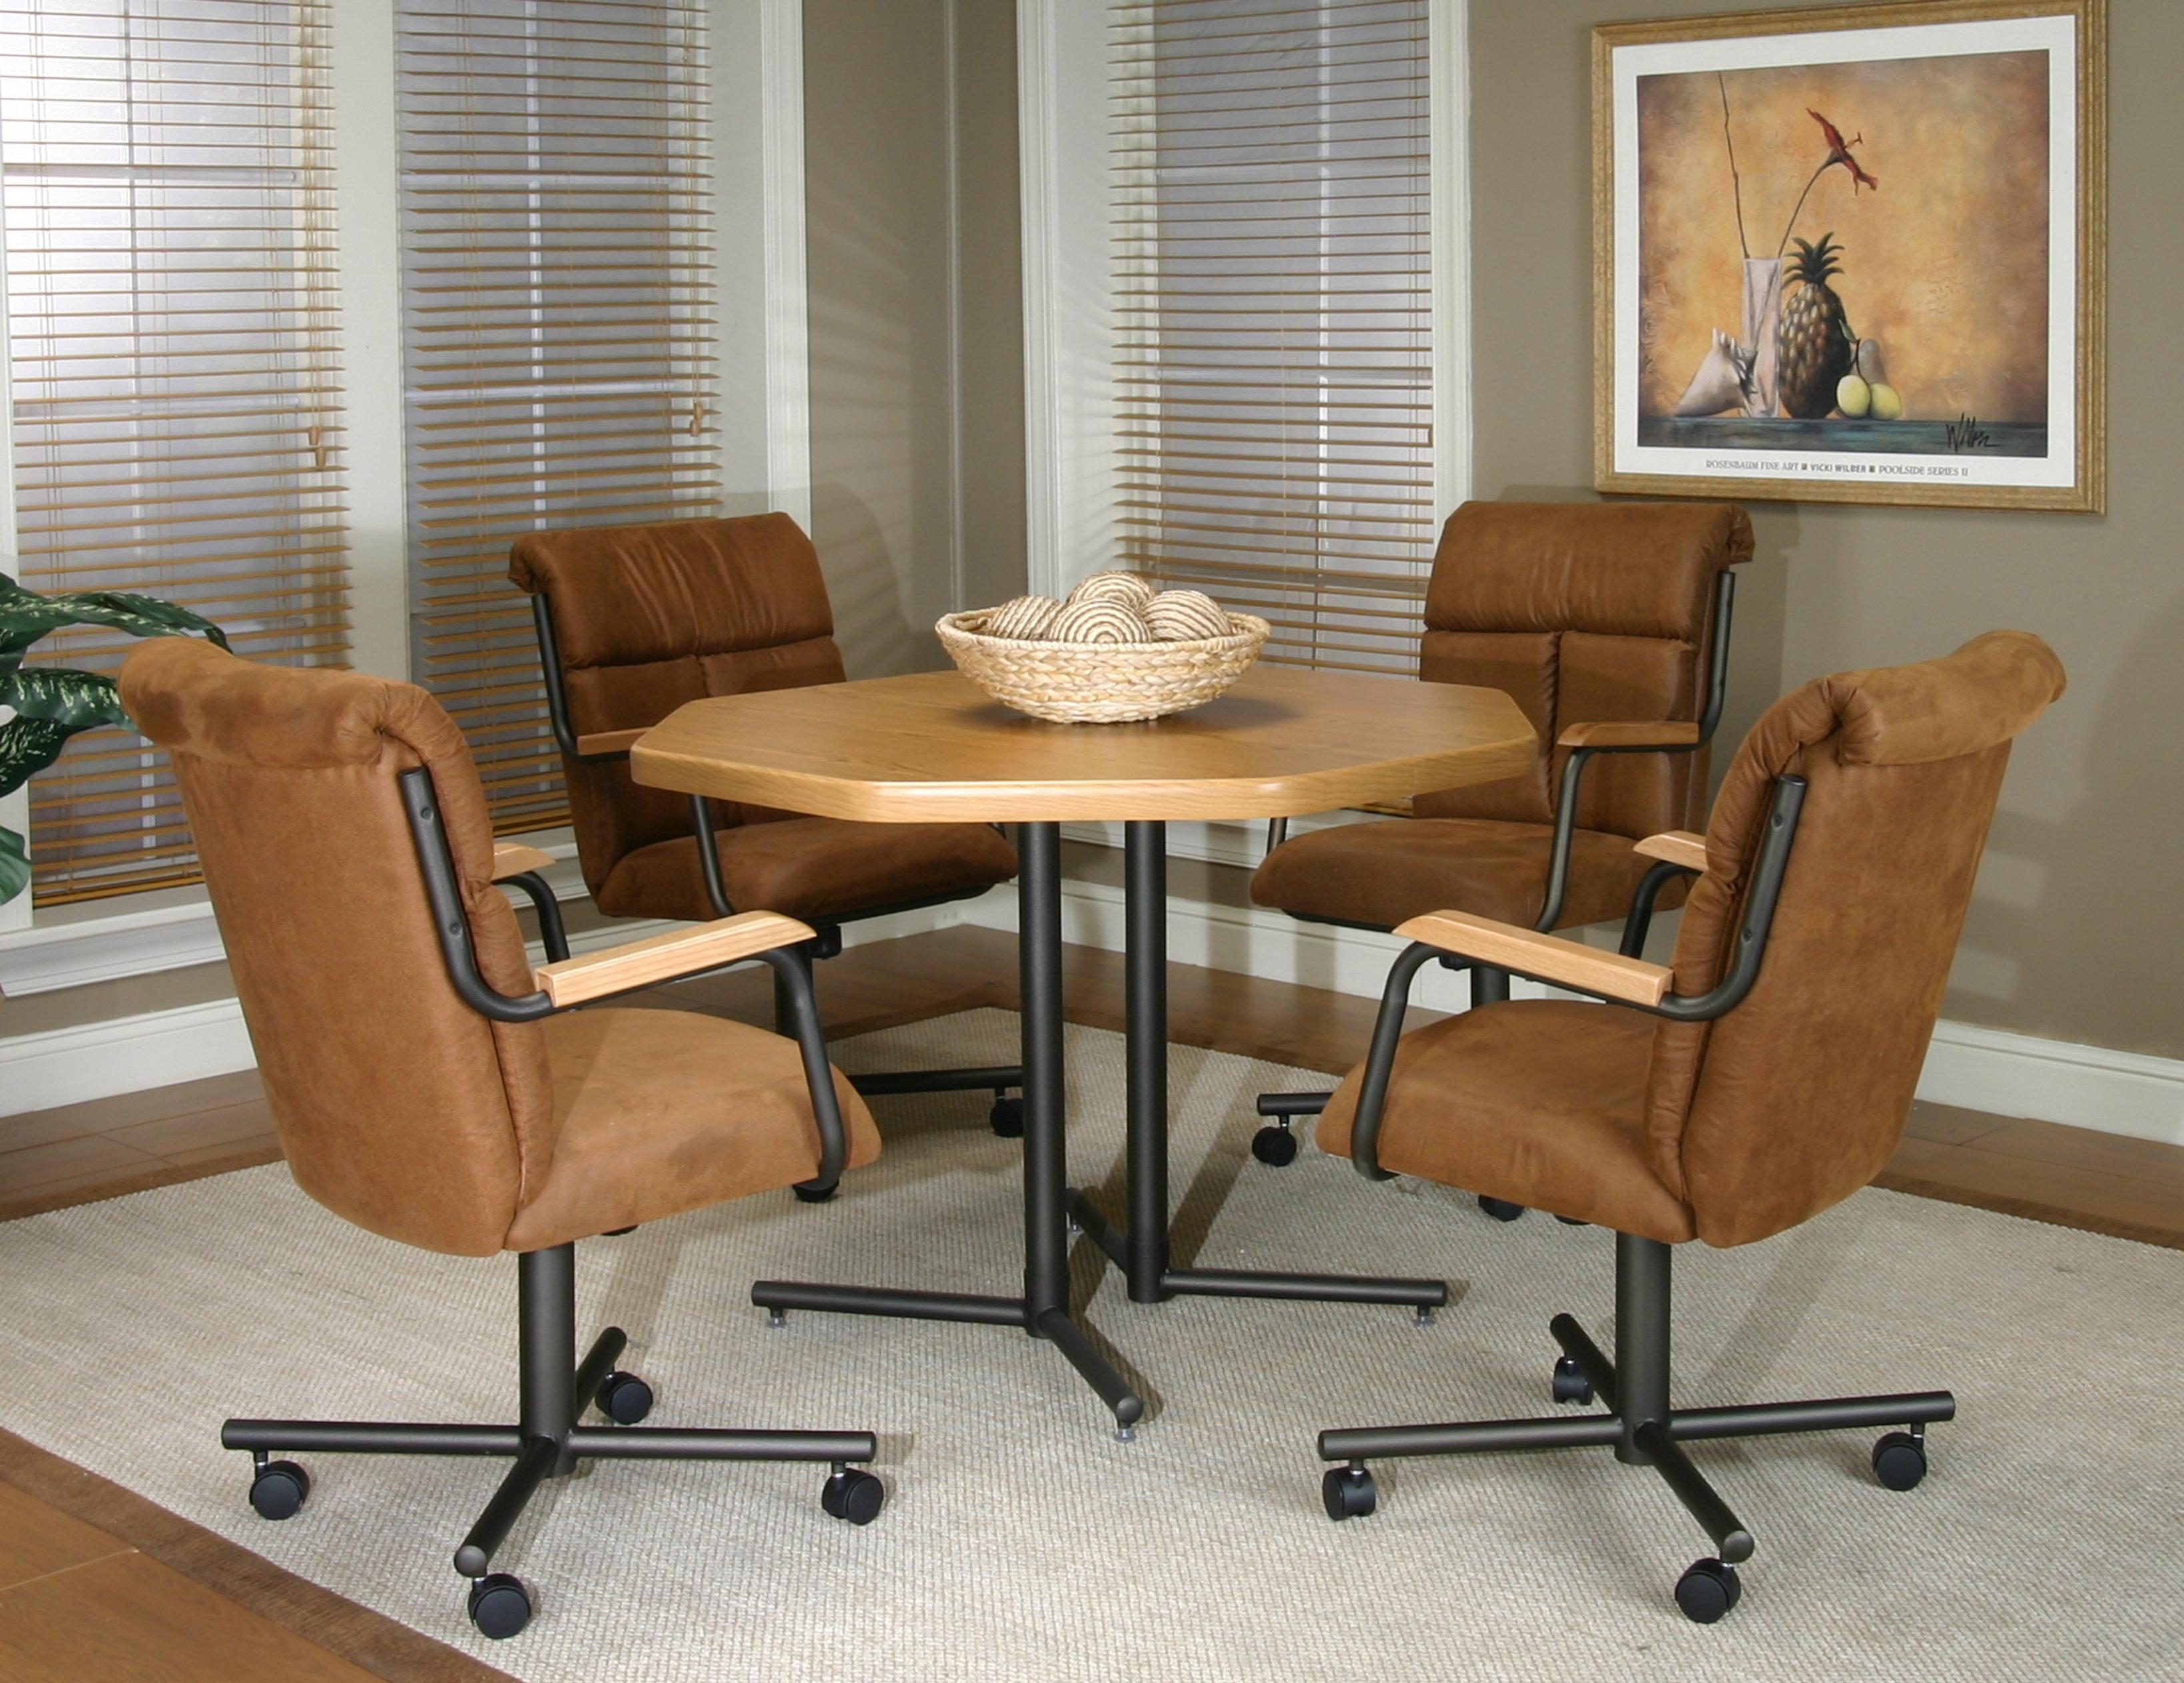 Swivel dining chairs foter vintage 50s dining room swivel for Swivel chair dining sets